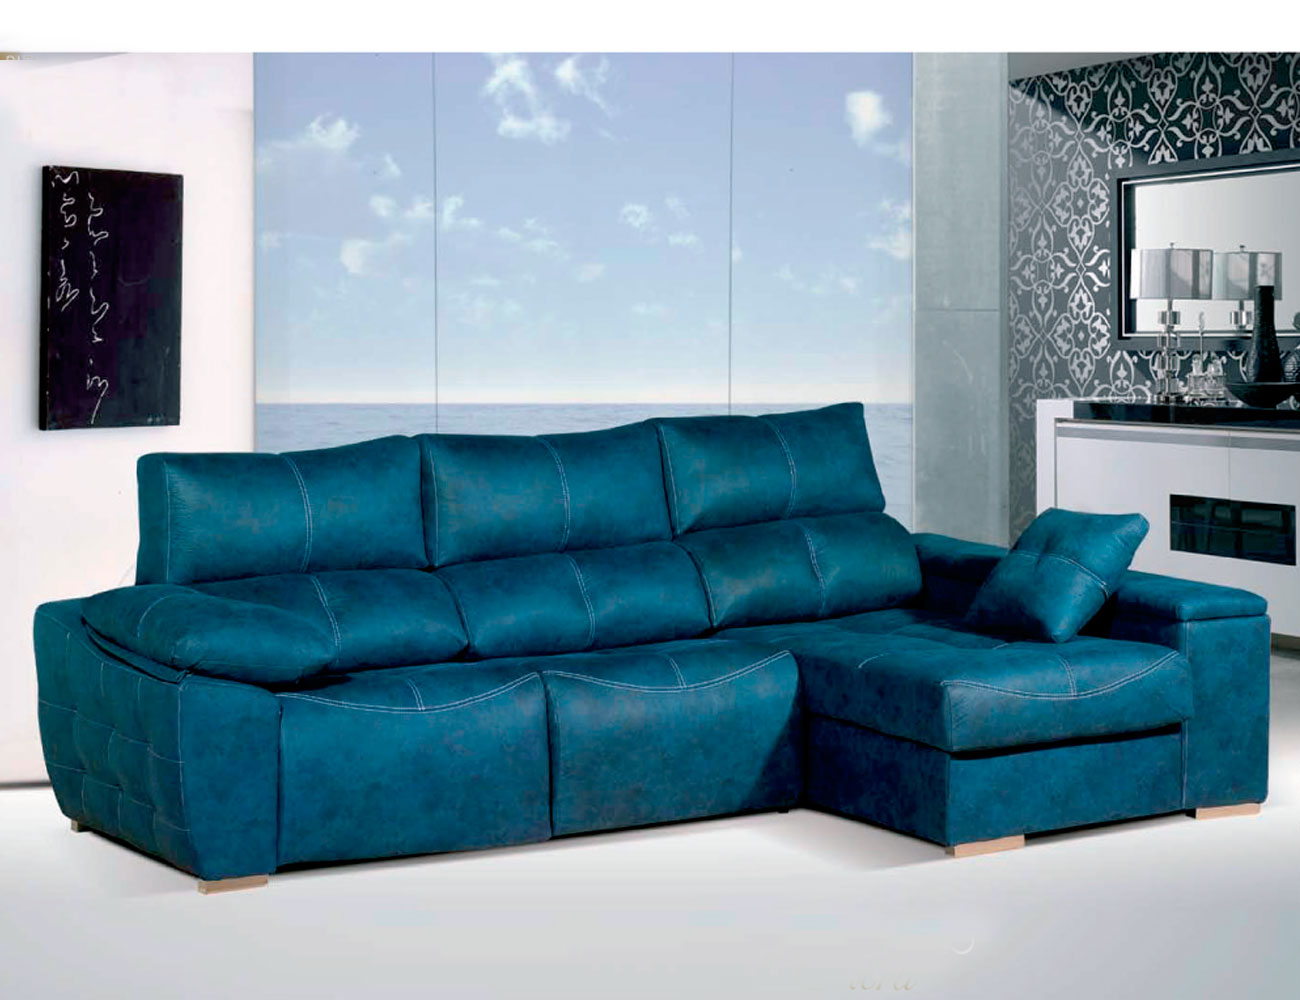 Sofa chaiselongue relax 2 motores anti manchas turquesa33